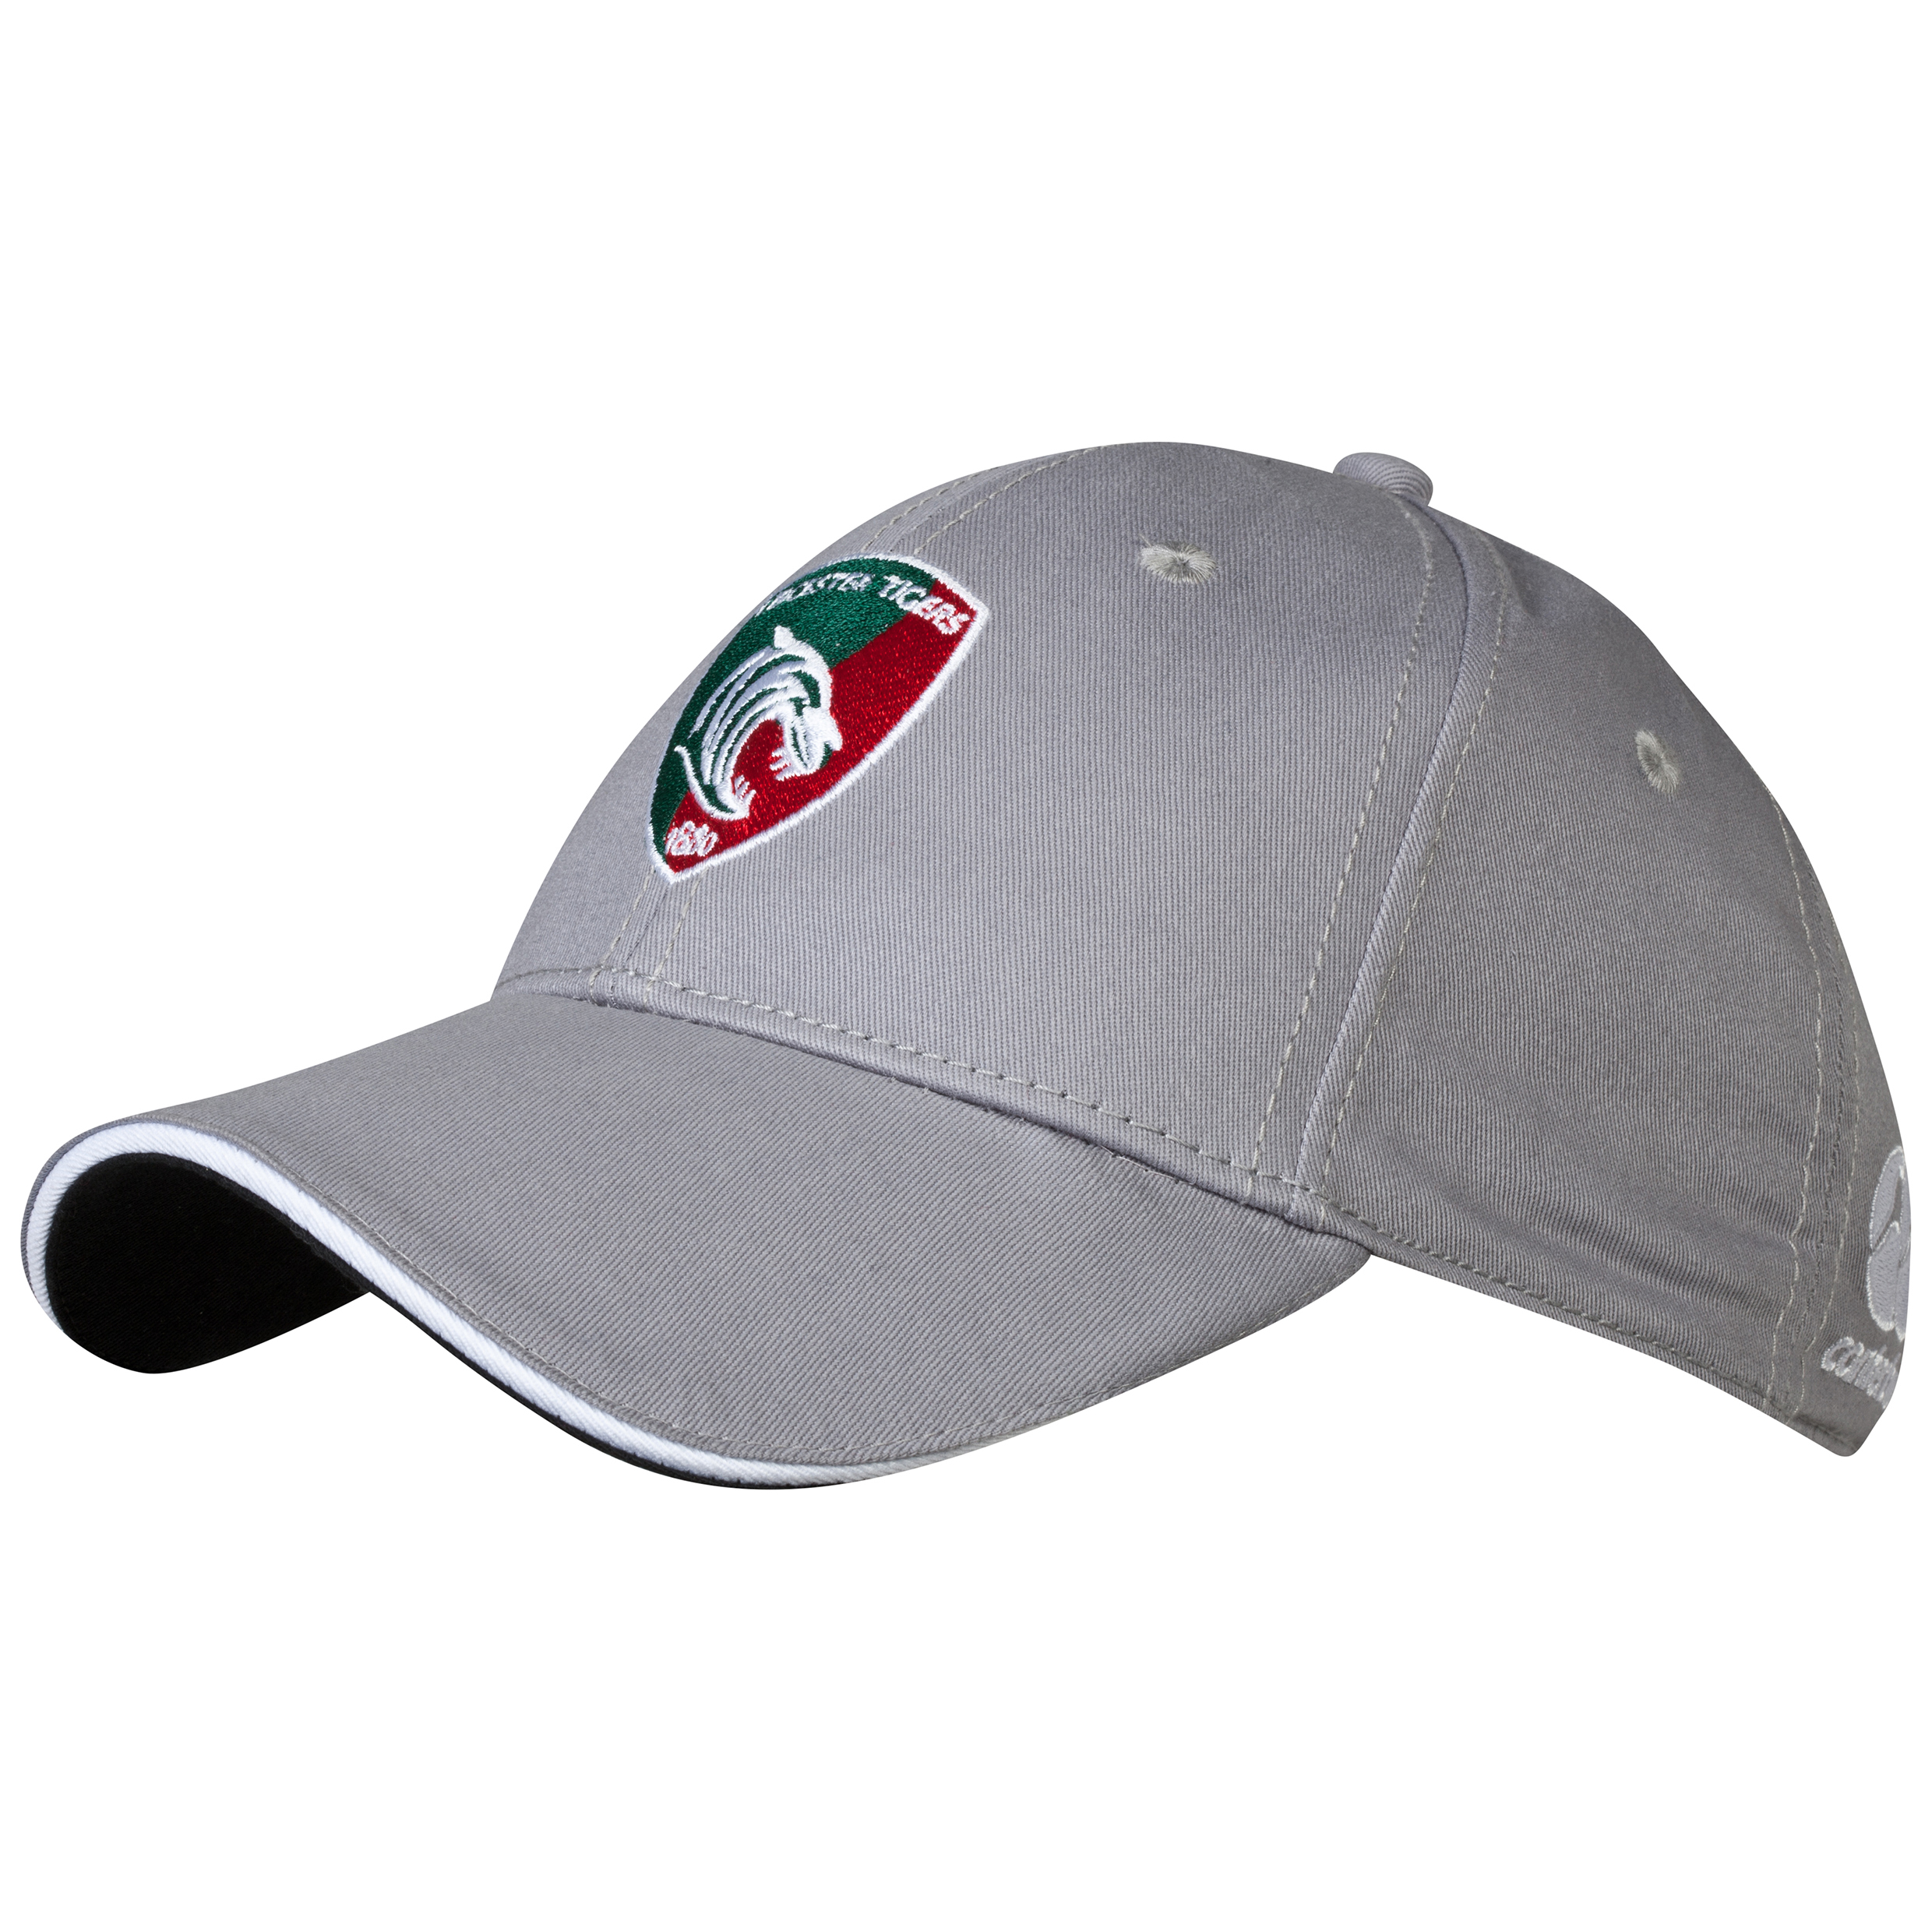 Leicester Tigers Cotton Drill Graphic Cap Grey